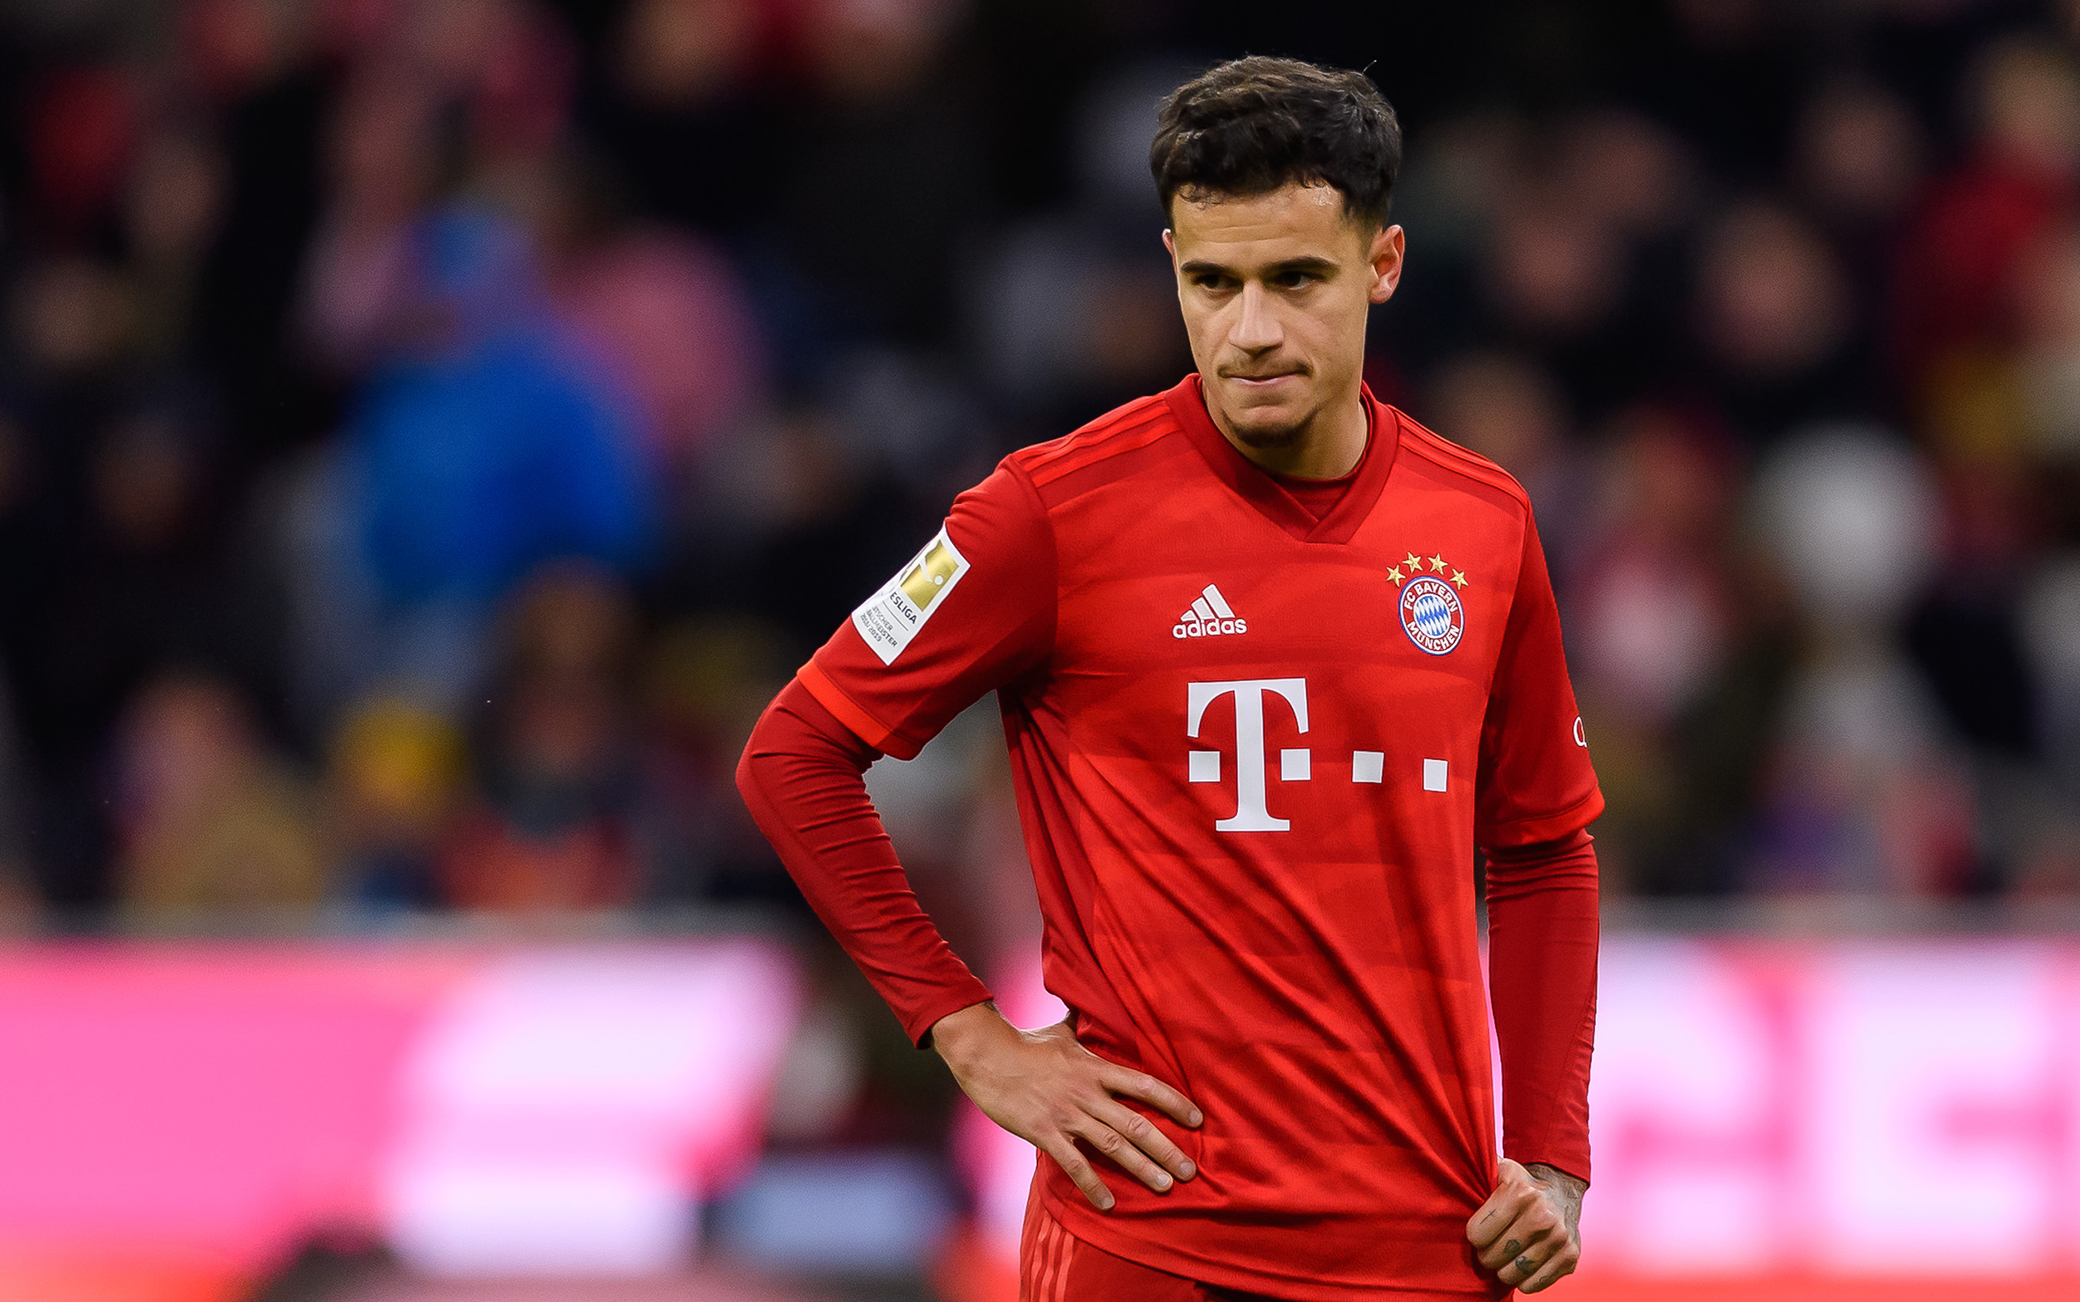 MUNICH, GERMANY - DECEMBER 14: (BILD ZEITUNG OUT) Philippe Coutinho of FC Bayern Muenchen looks on during the Bundesliga match between FC Bayern Muenchen and SV Werder Bremen at Allianz Arena on December 14, 2019 in Munich, Germany. (Photo by TF-Images/Getty Images)